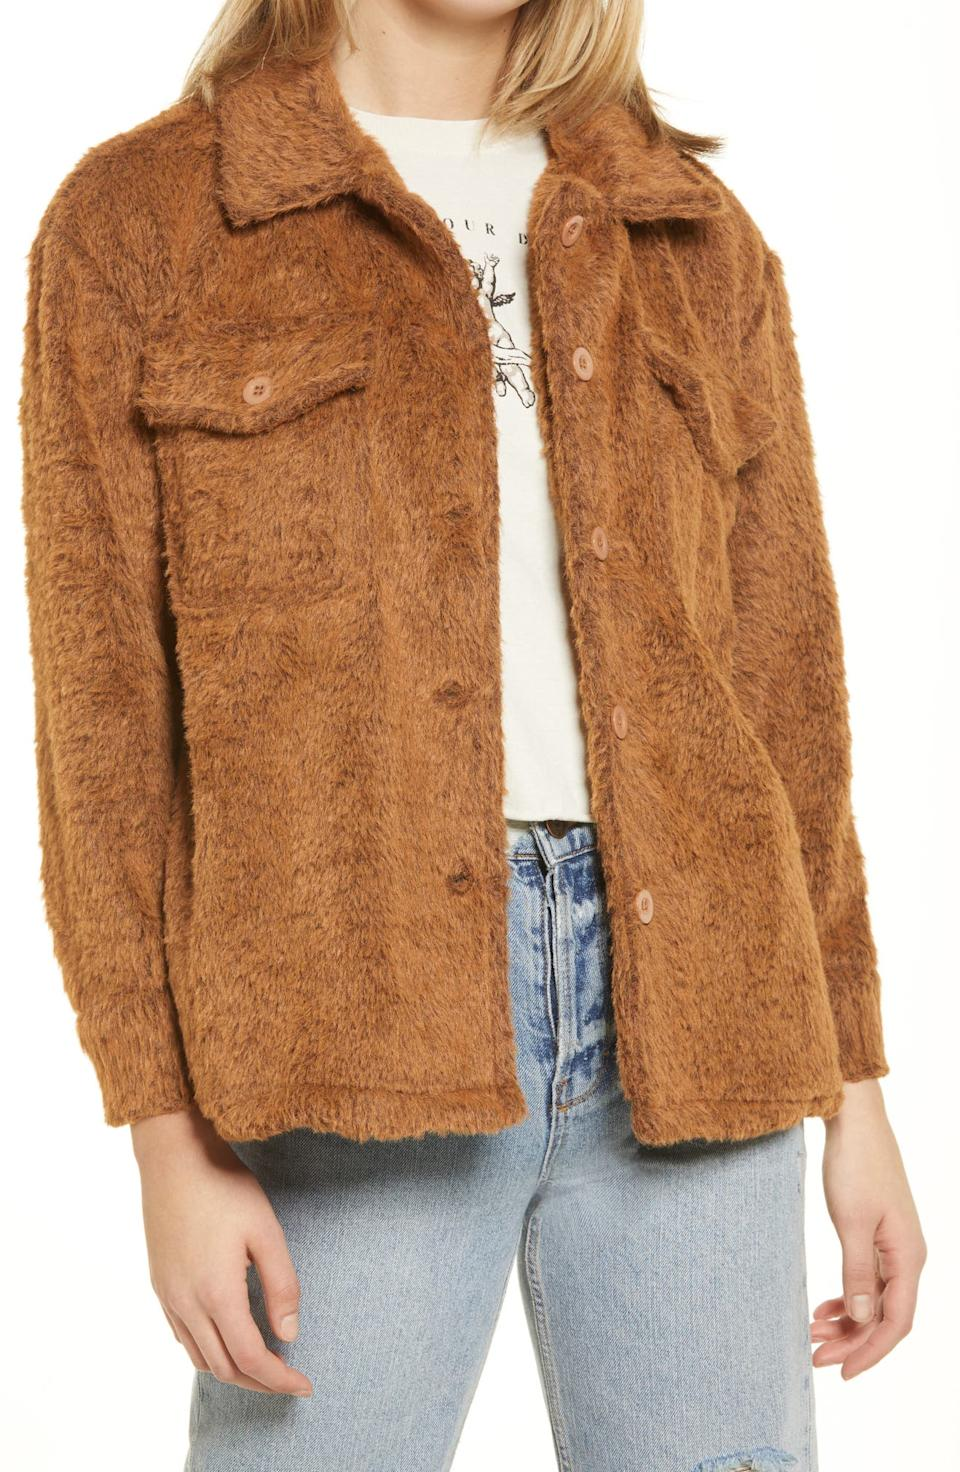 Cotton Emporium Fuzzy Shirt Jacket. Image via Nordstrom.